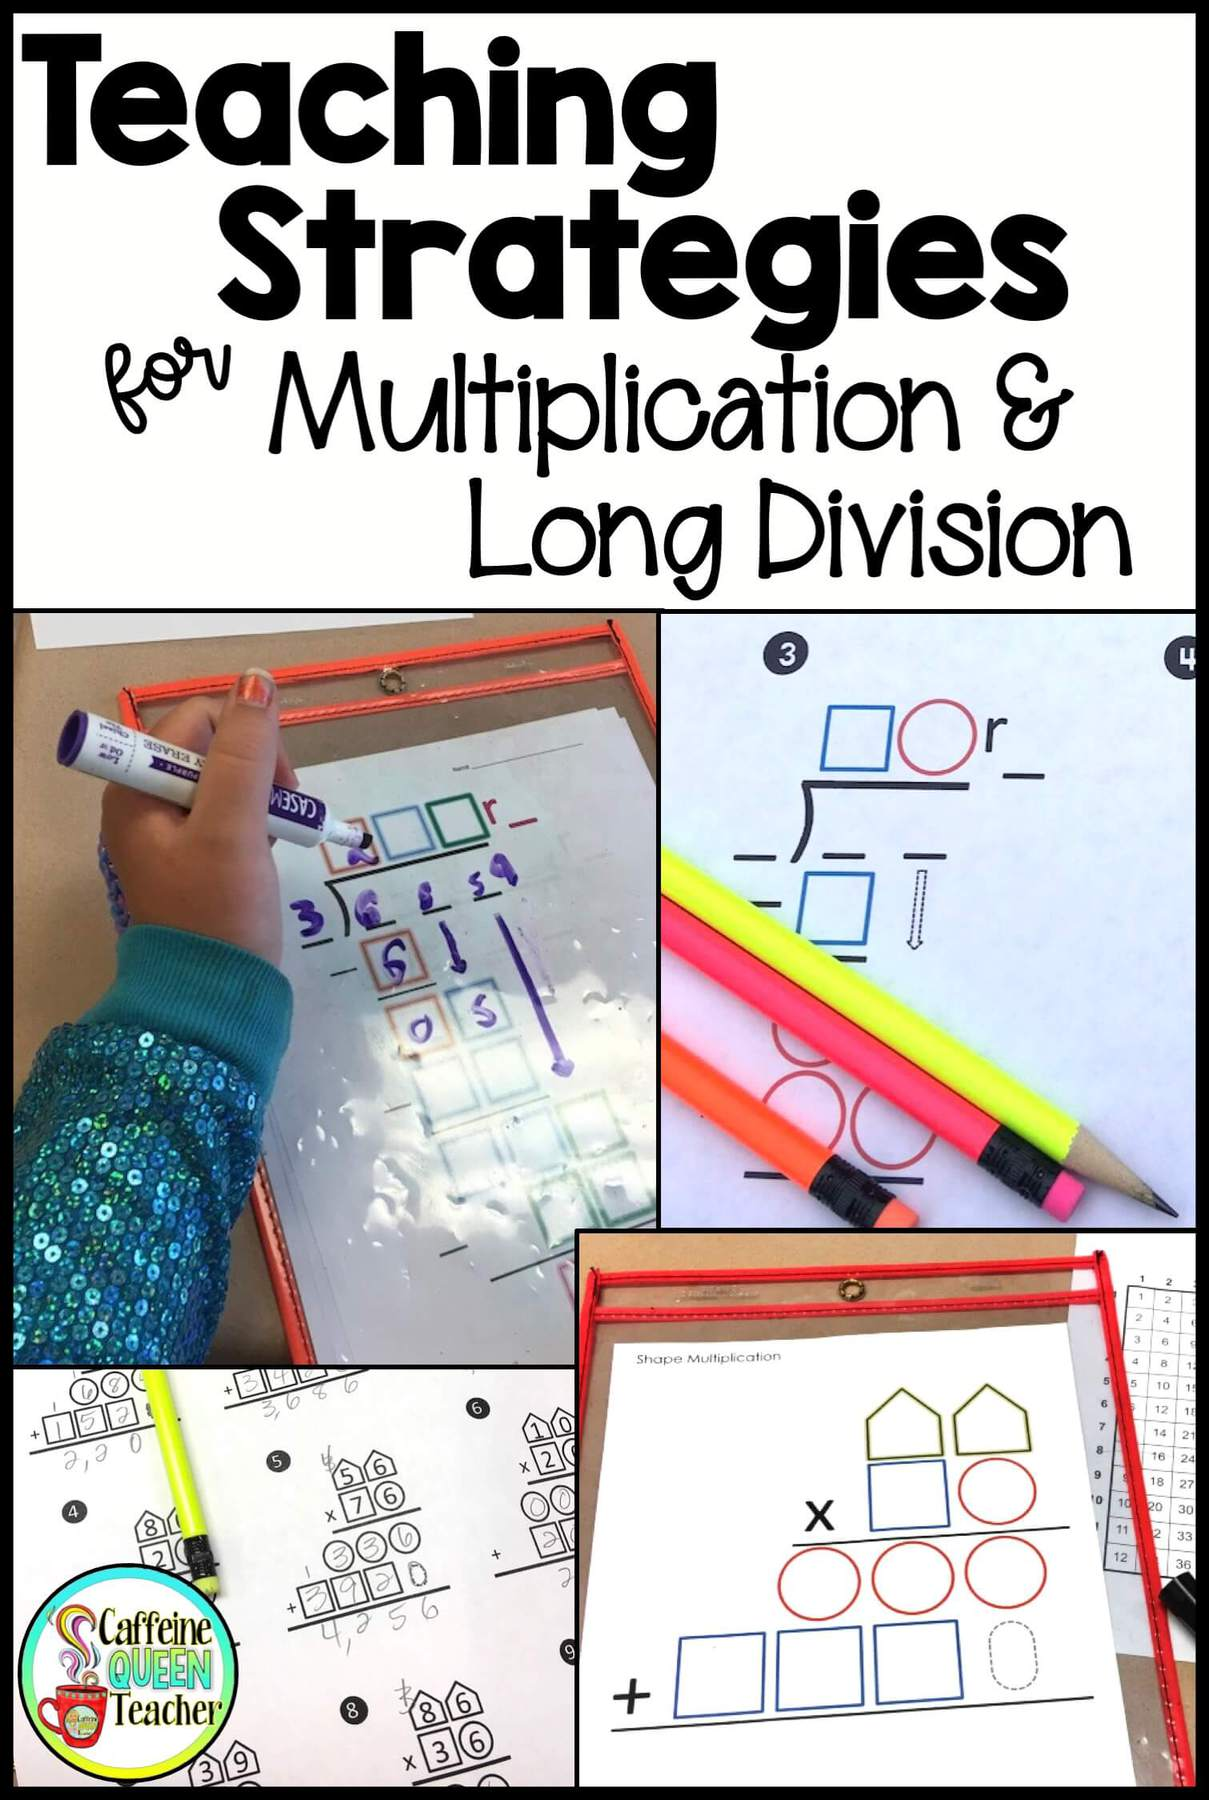 medium resolution of How to Teach Multi-Digit Multiplication and Long Division - Caffeine Queen  Teacher